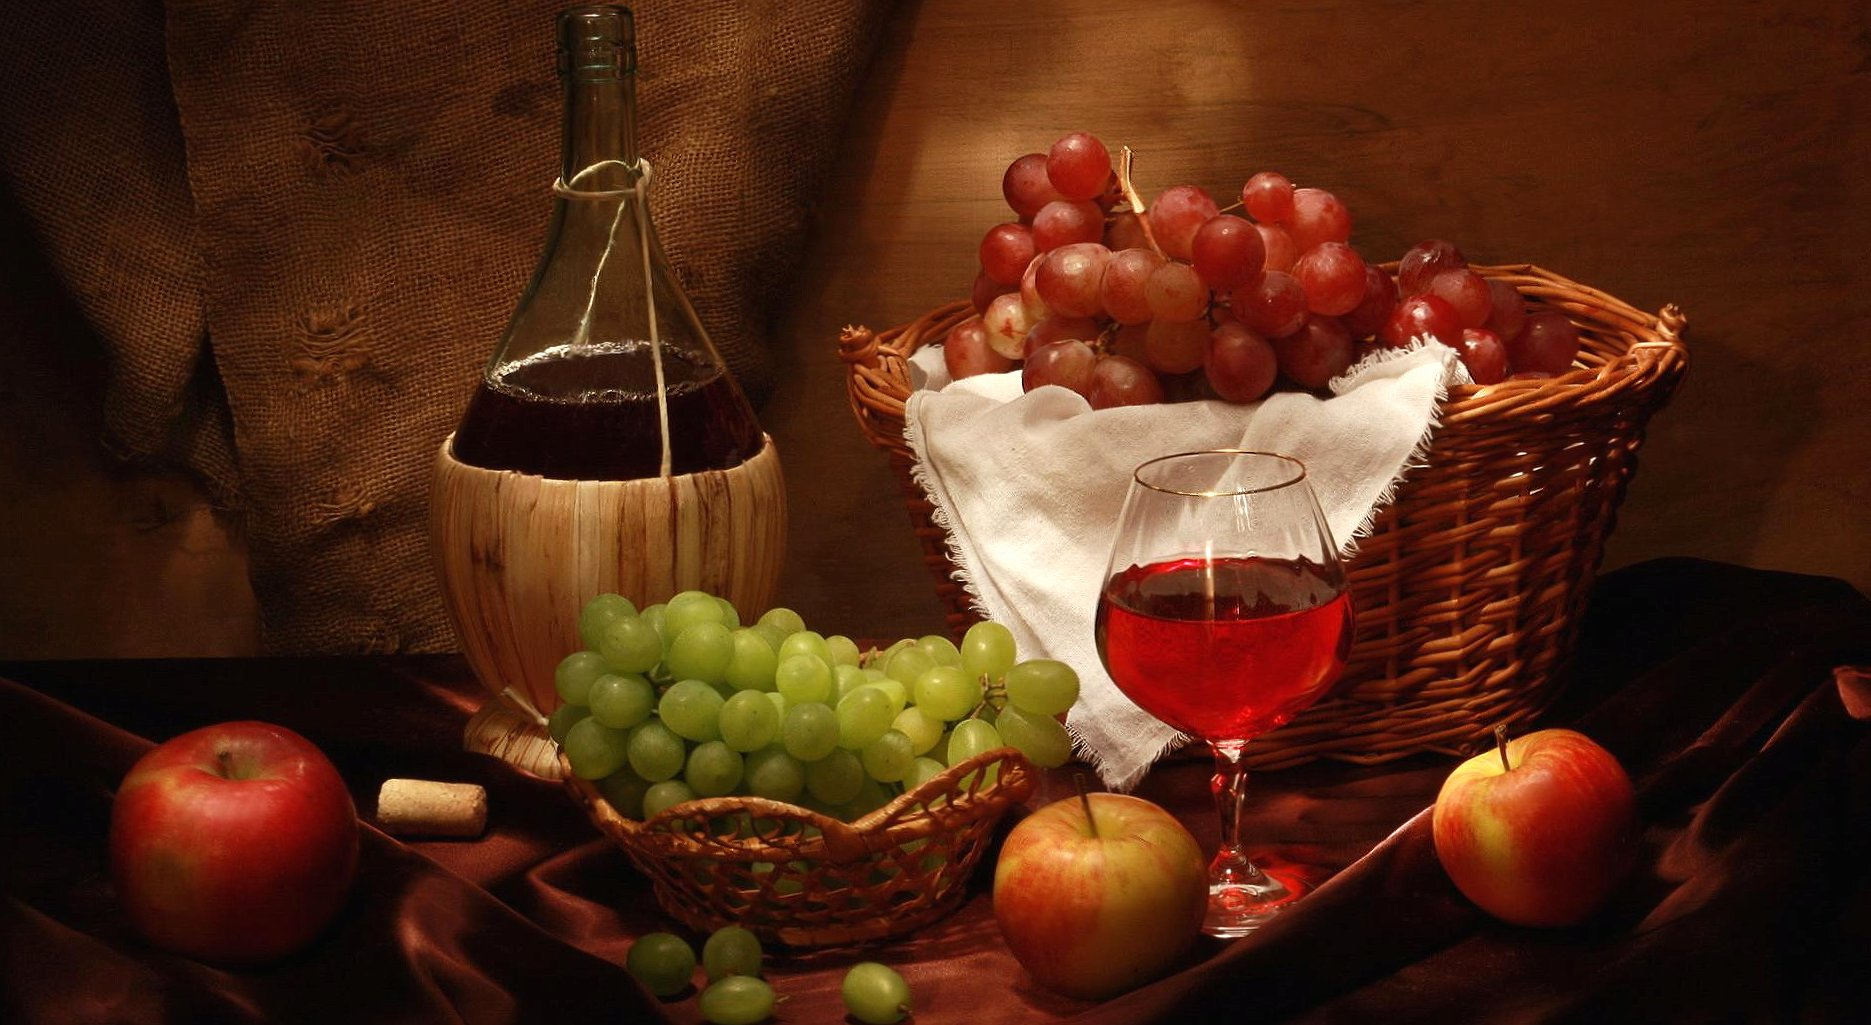 cellar wine grapes at 640 x 960 iPhone 4 size wallpapers HD quality